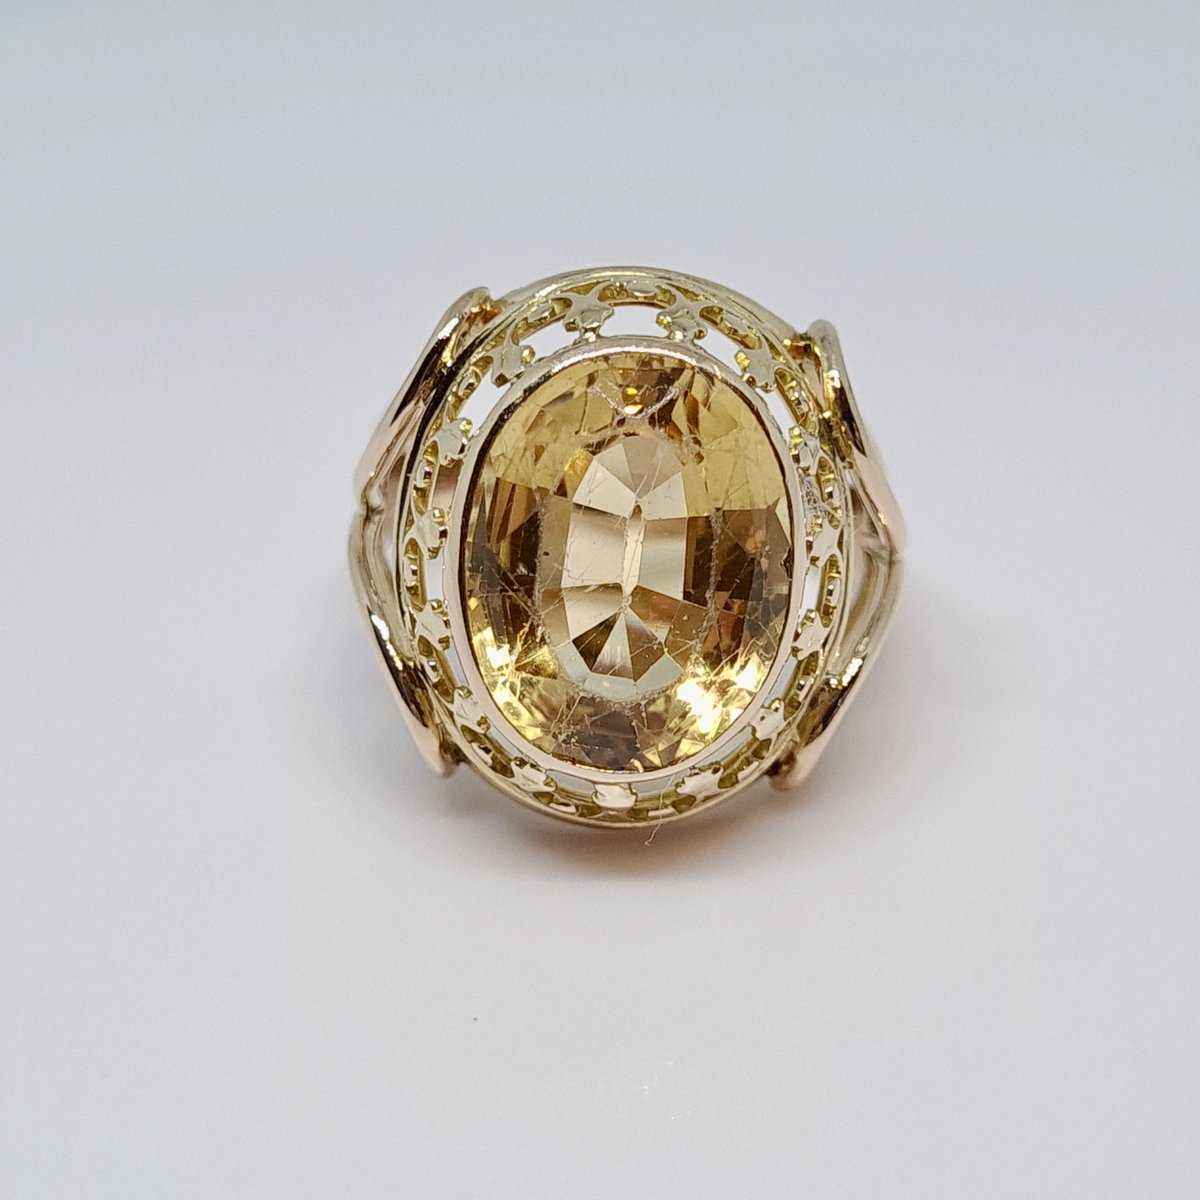 Antique Citrine Ring 4.80 Carats In 18k Yellow Gold 750/1000 5.29 Grams